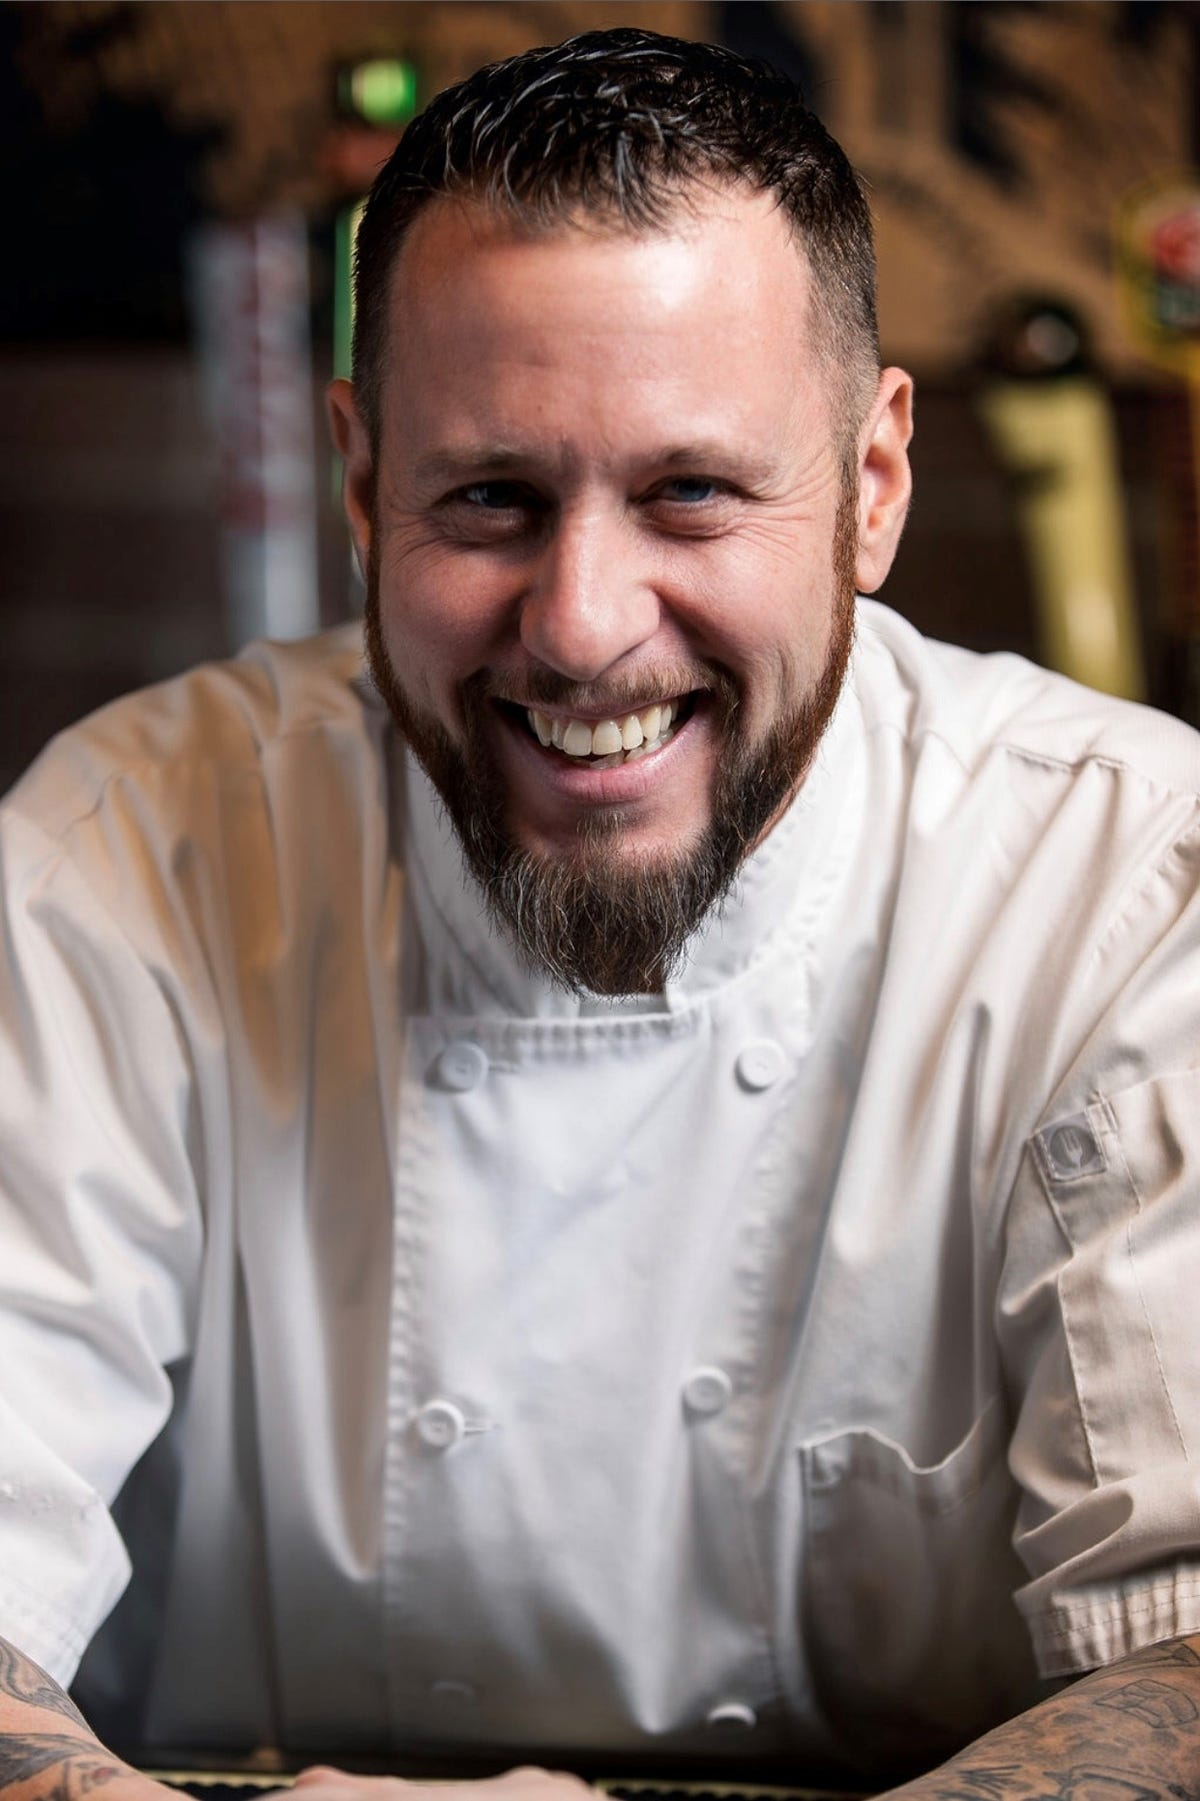 Food Network's 'Chopped' winner is Phoenix chef Nick LaRosa